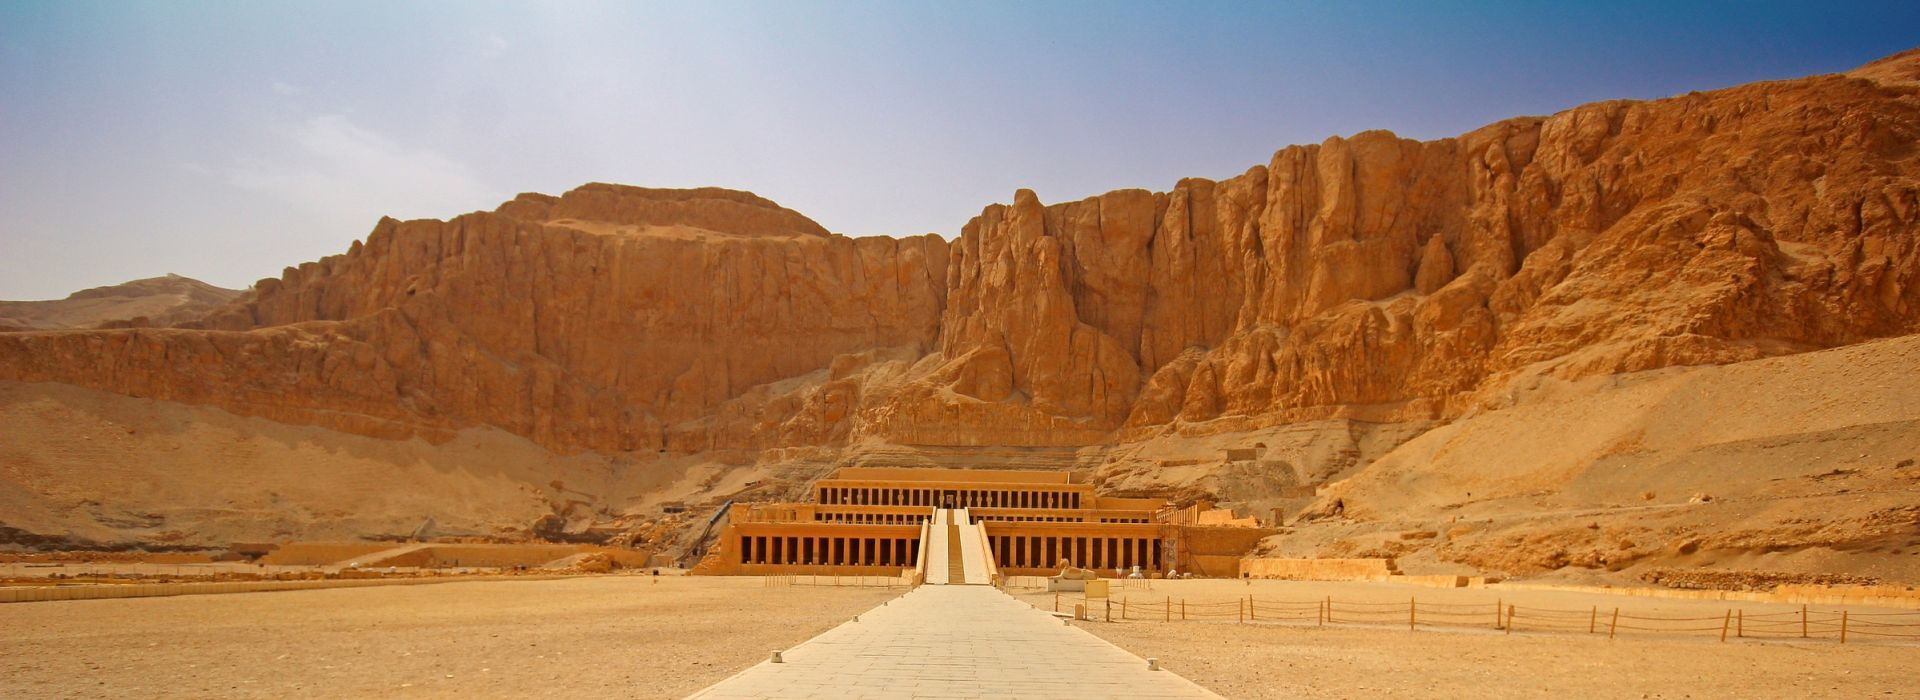 Sightseeing, attractions, culture and history Tours in Giza